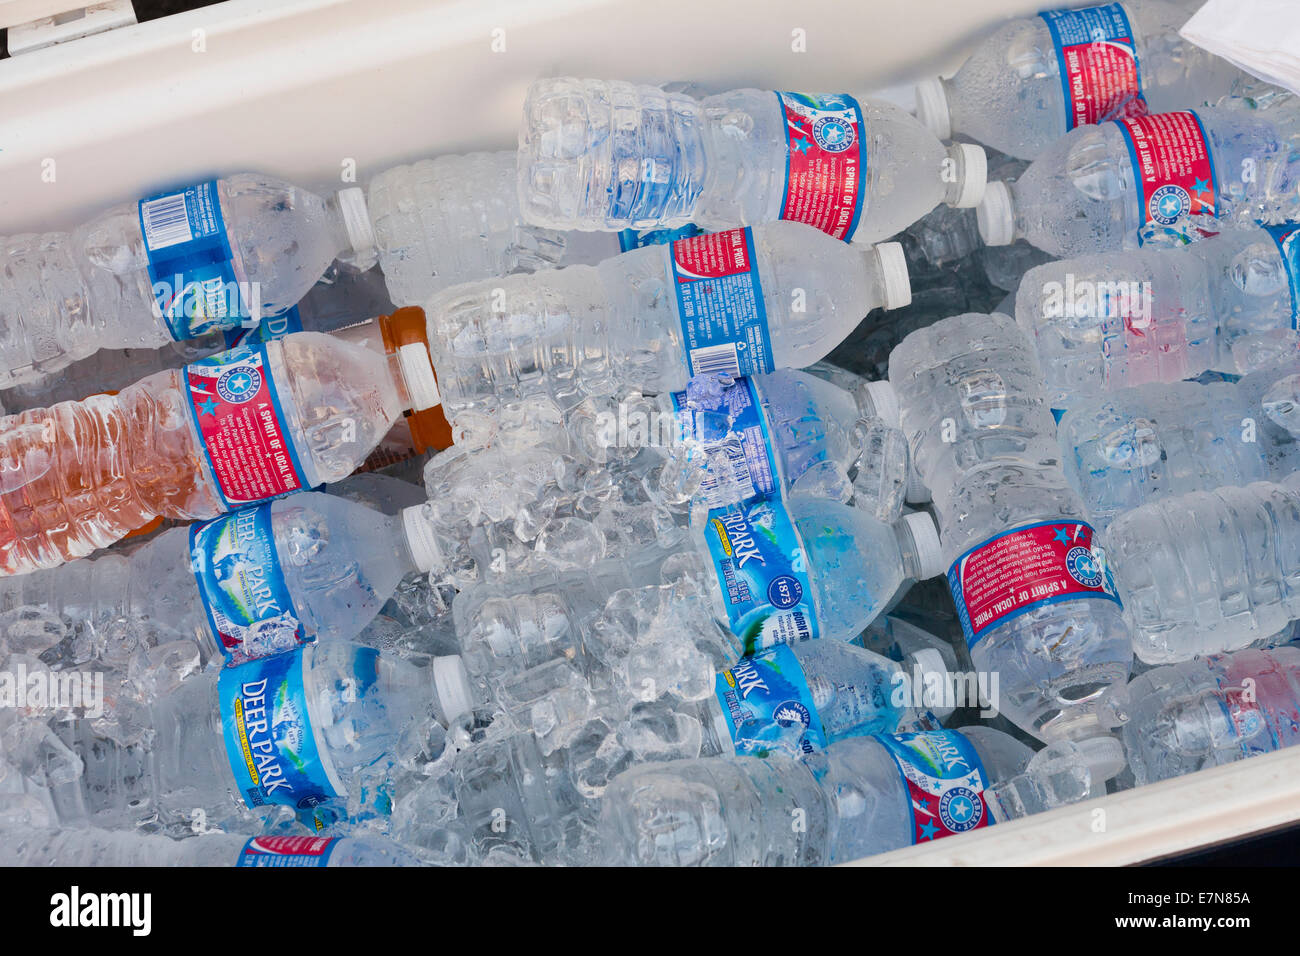 Bottled water in cooler - USA - Stock Image